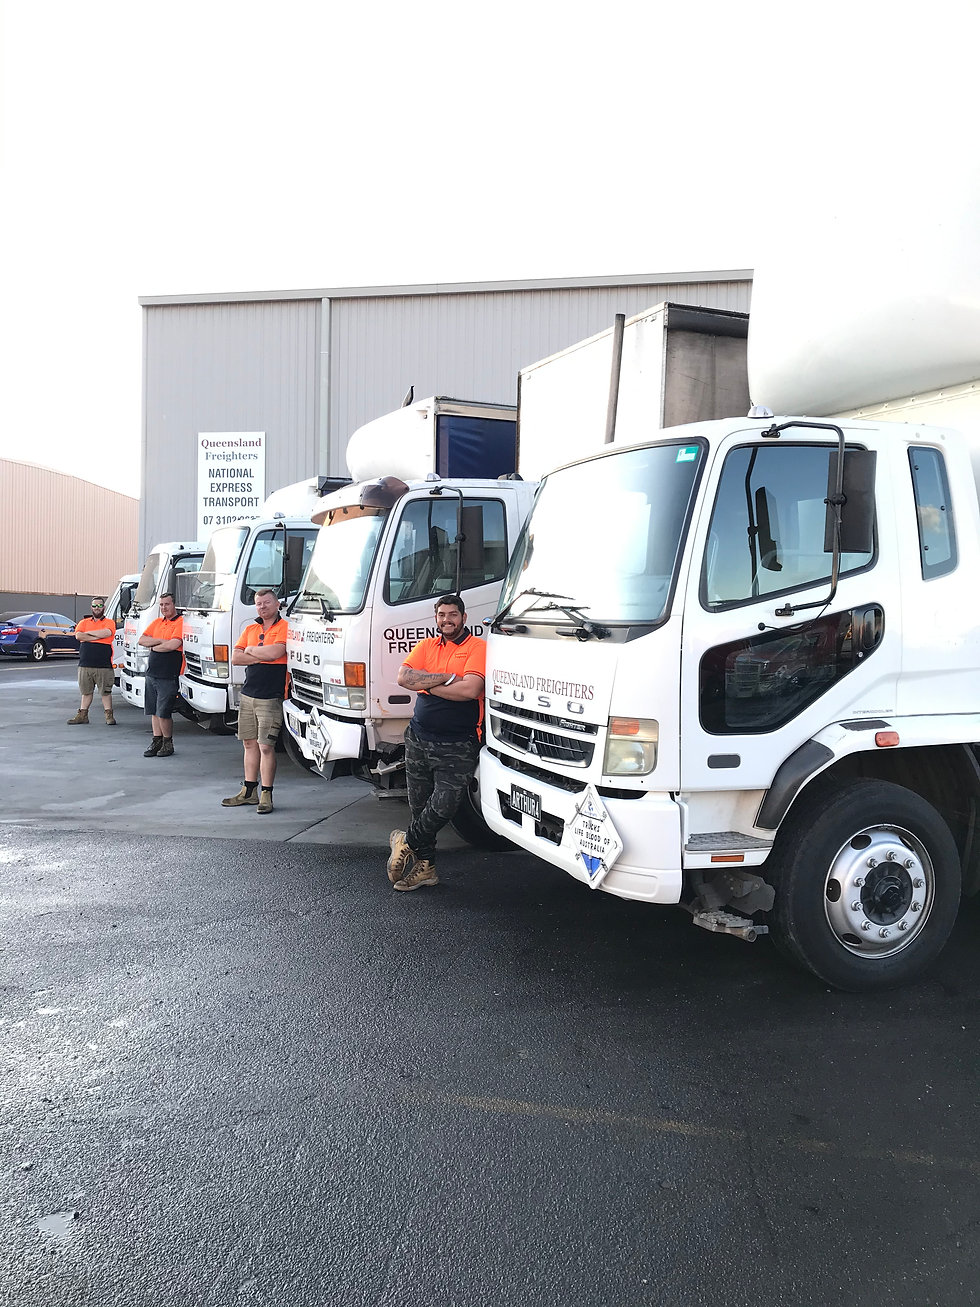 Queensland Freighters - General and Express Pallet Freight Service. B2B and B2C Delivery & Courier Freight Across Australia